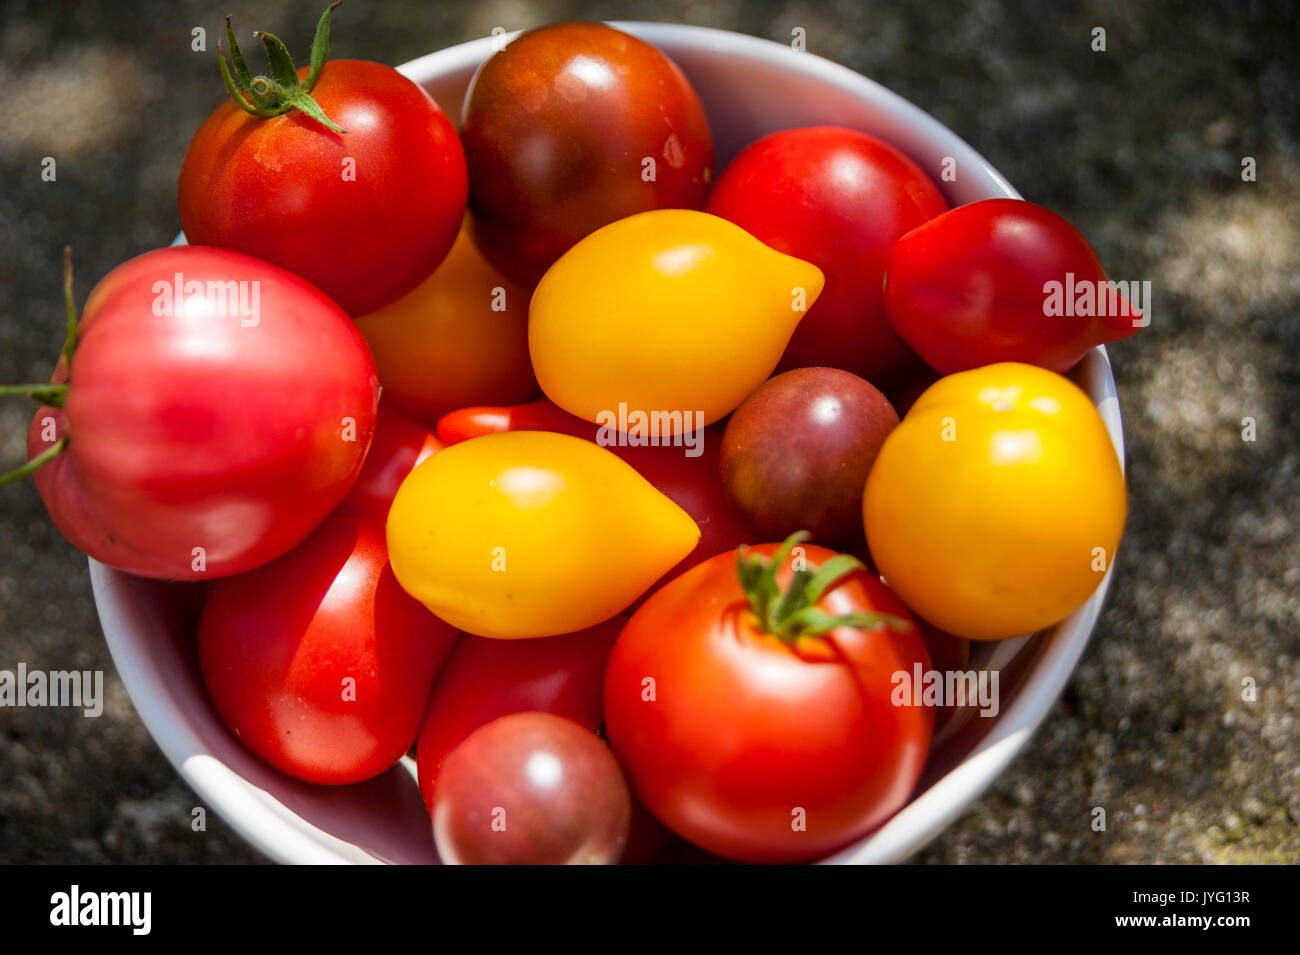 Varieties of Tomatoes - Stock Image